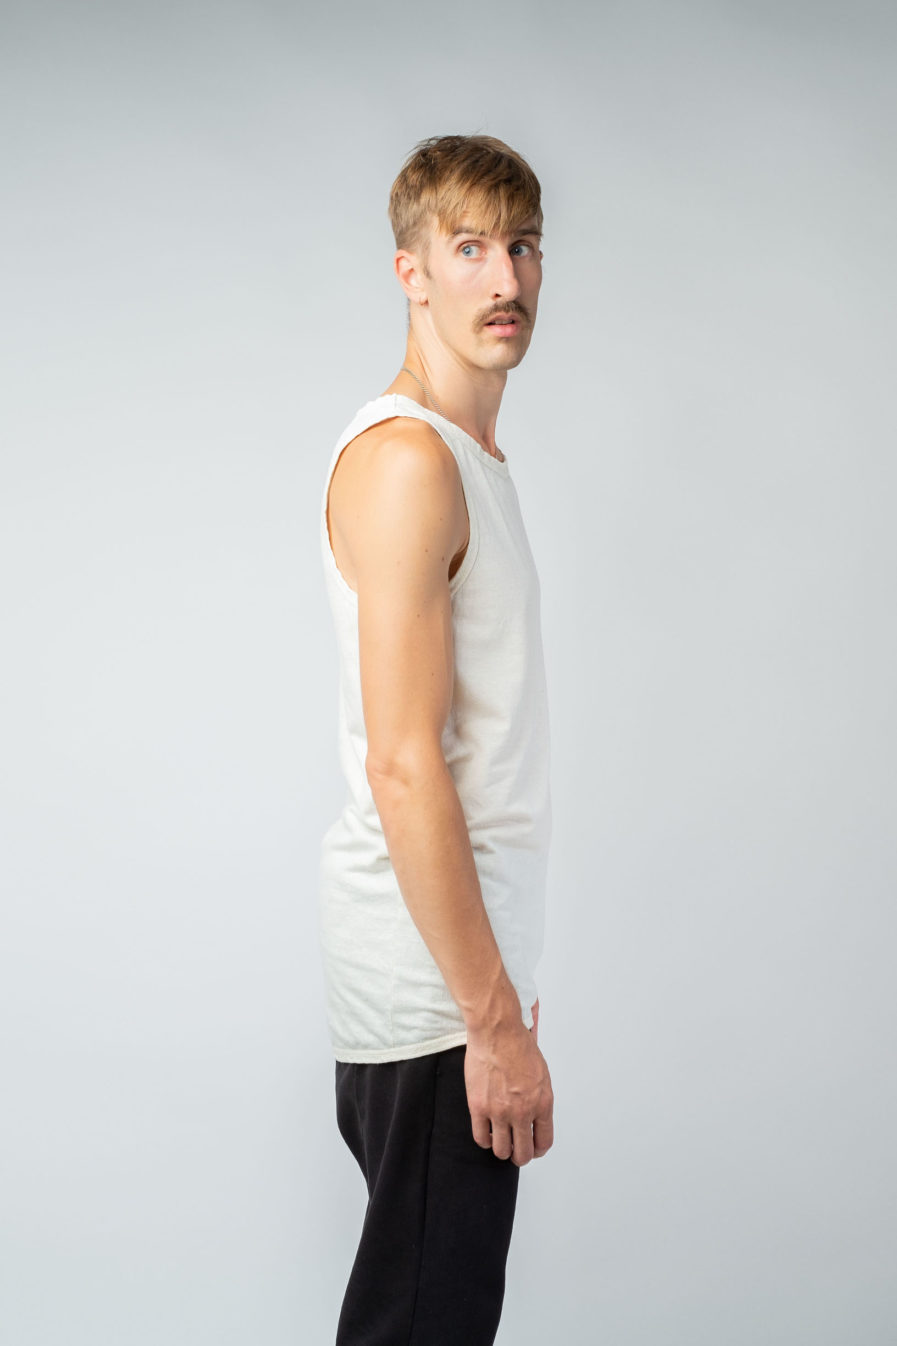 MAN unisex singlet tanktop hemp organic cotton WILLIE Blank canvas side